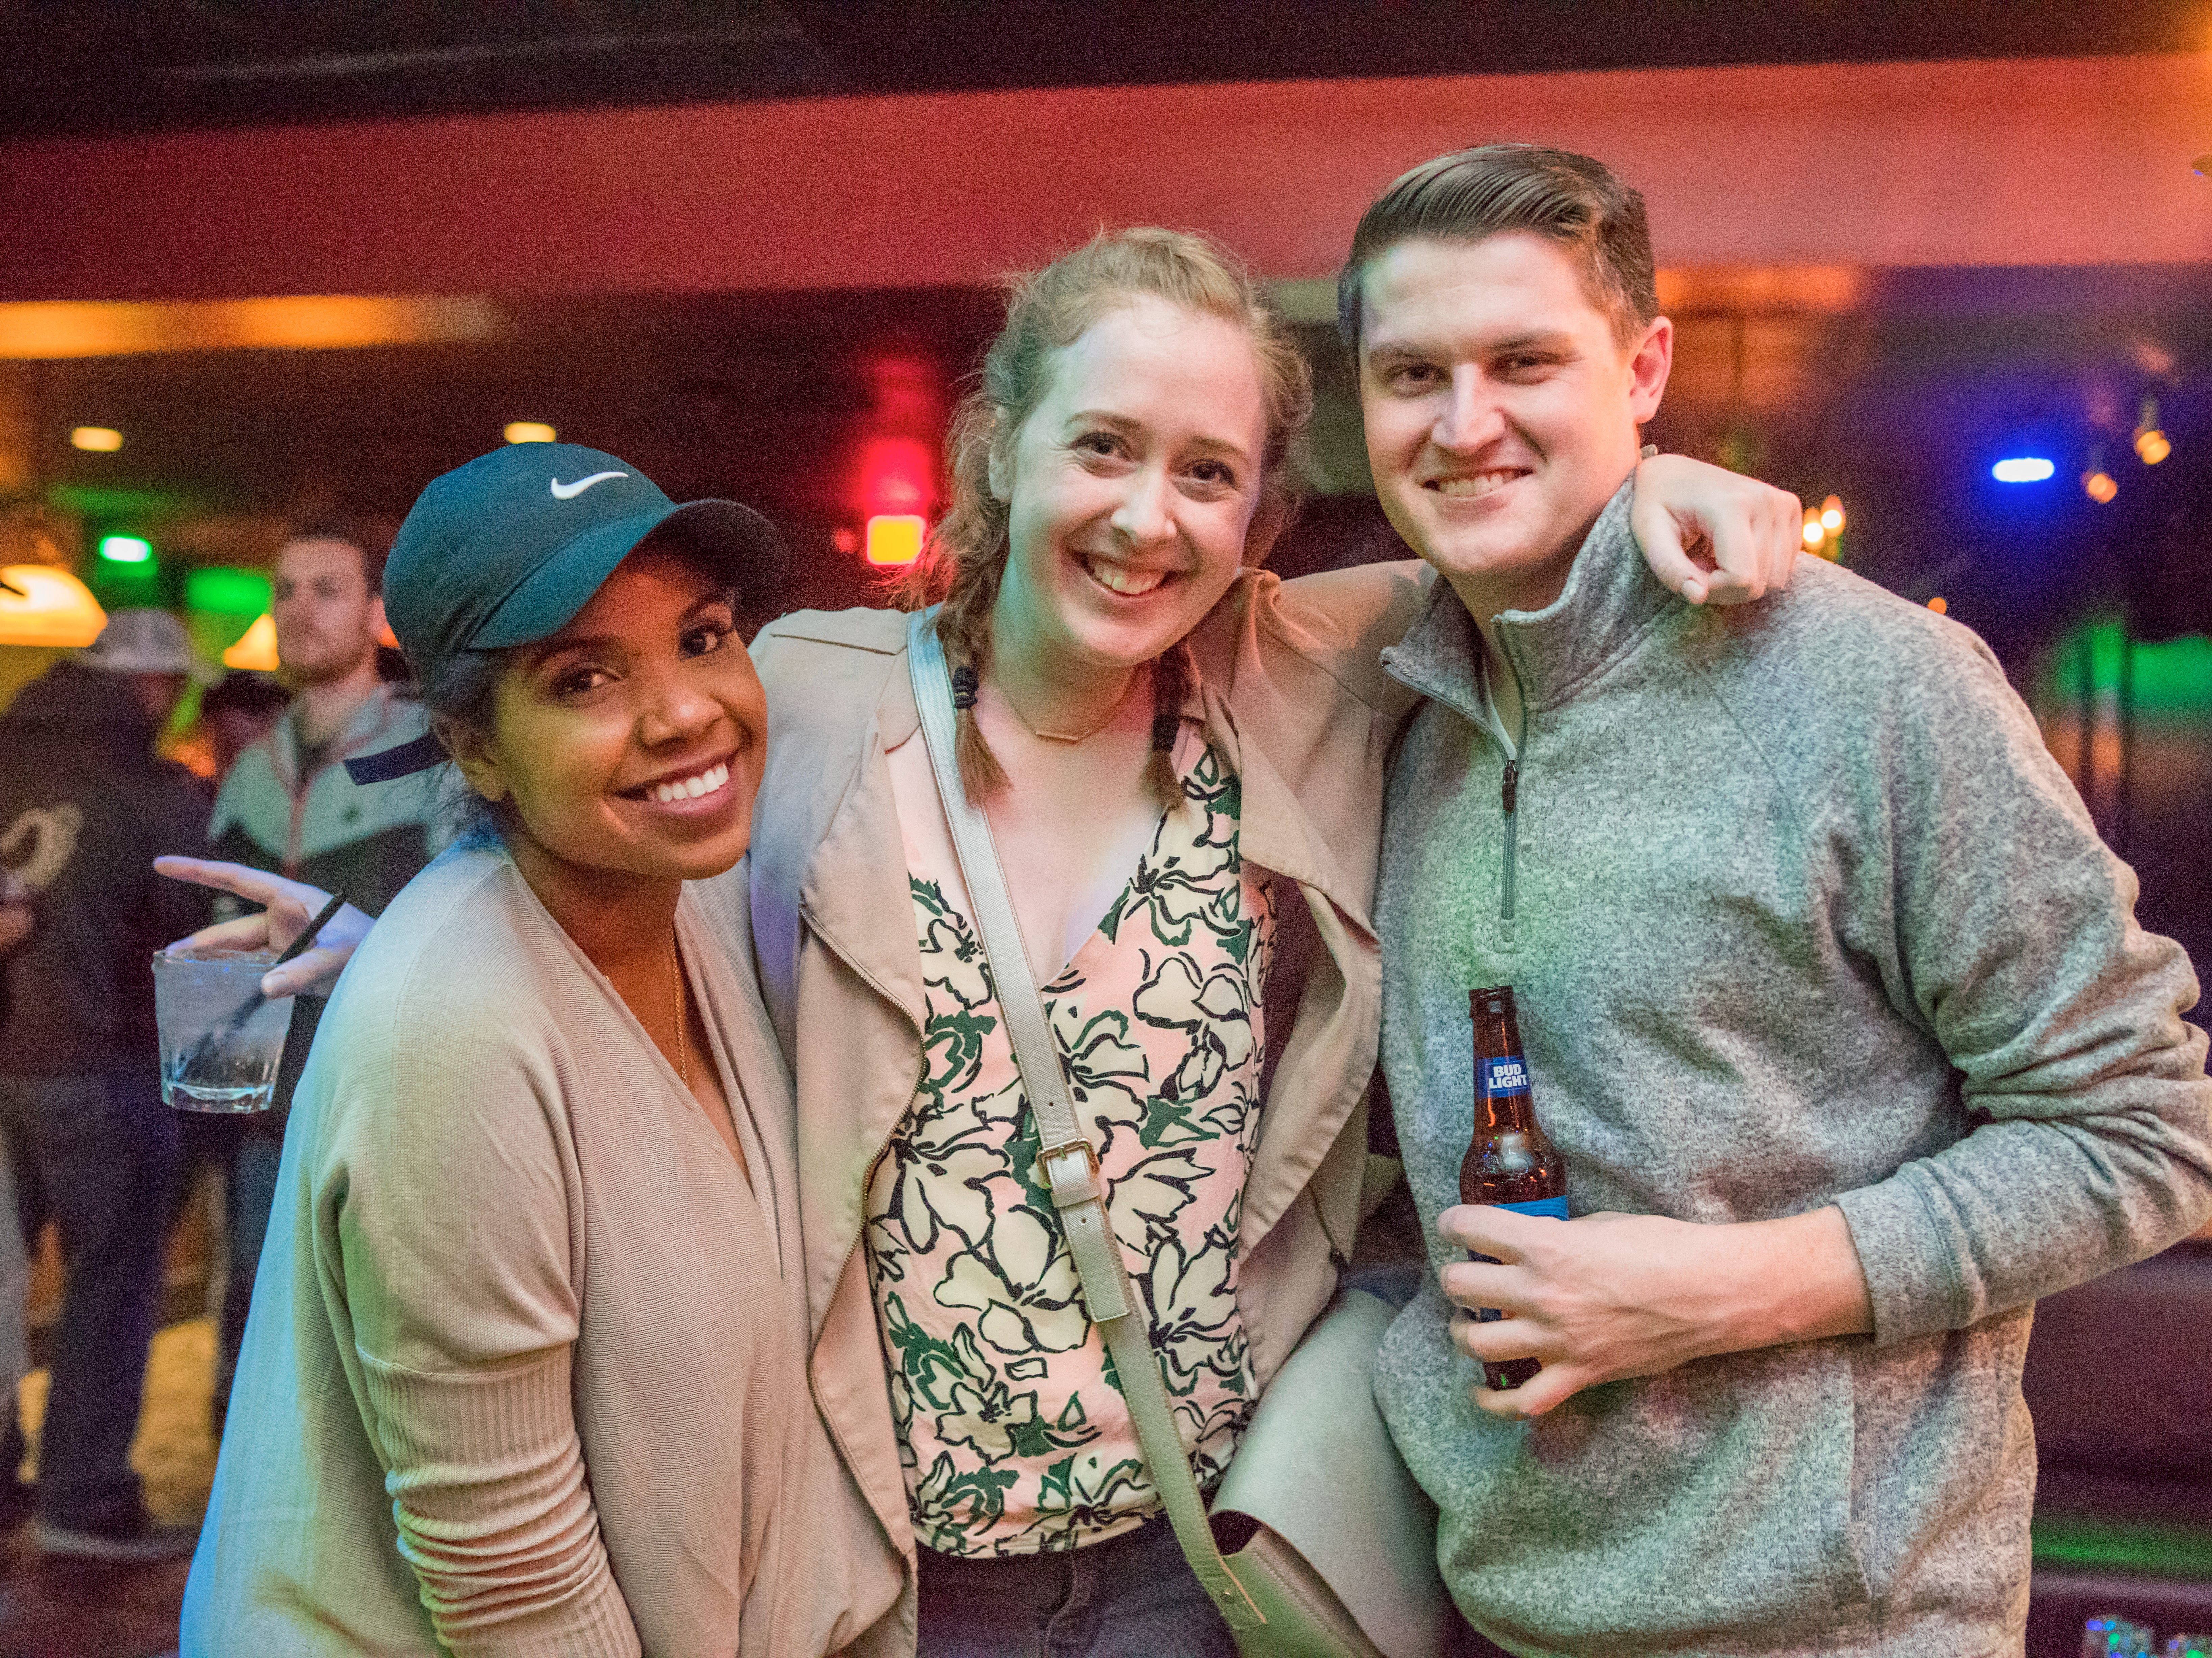 Hannah Hillyard, 27, Dan Molloy, 26, and Rheya Spigner, 26, all of Des Moines, having a great night out,Friday, Dec. 14 at Voodoo Lounge.